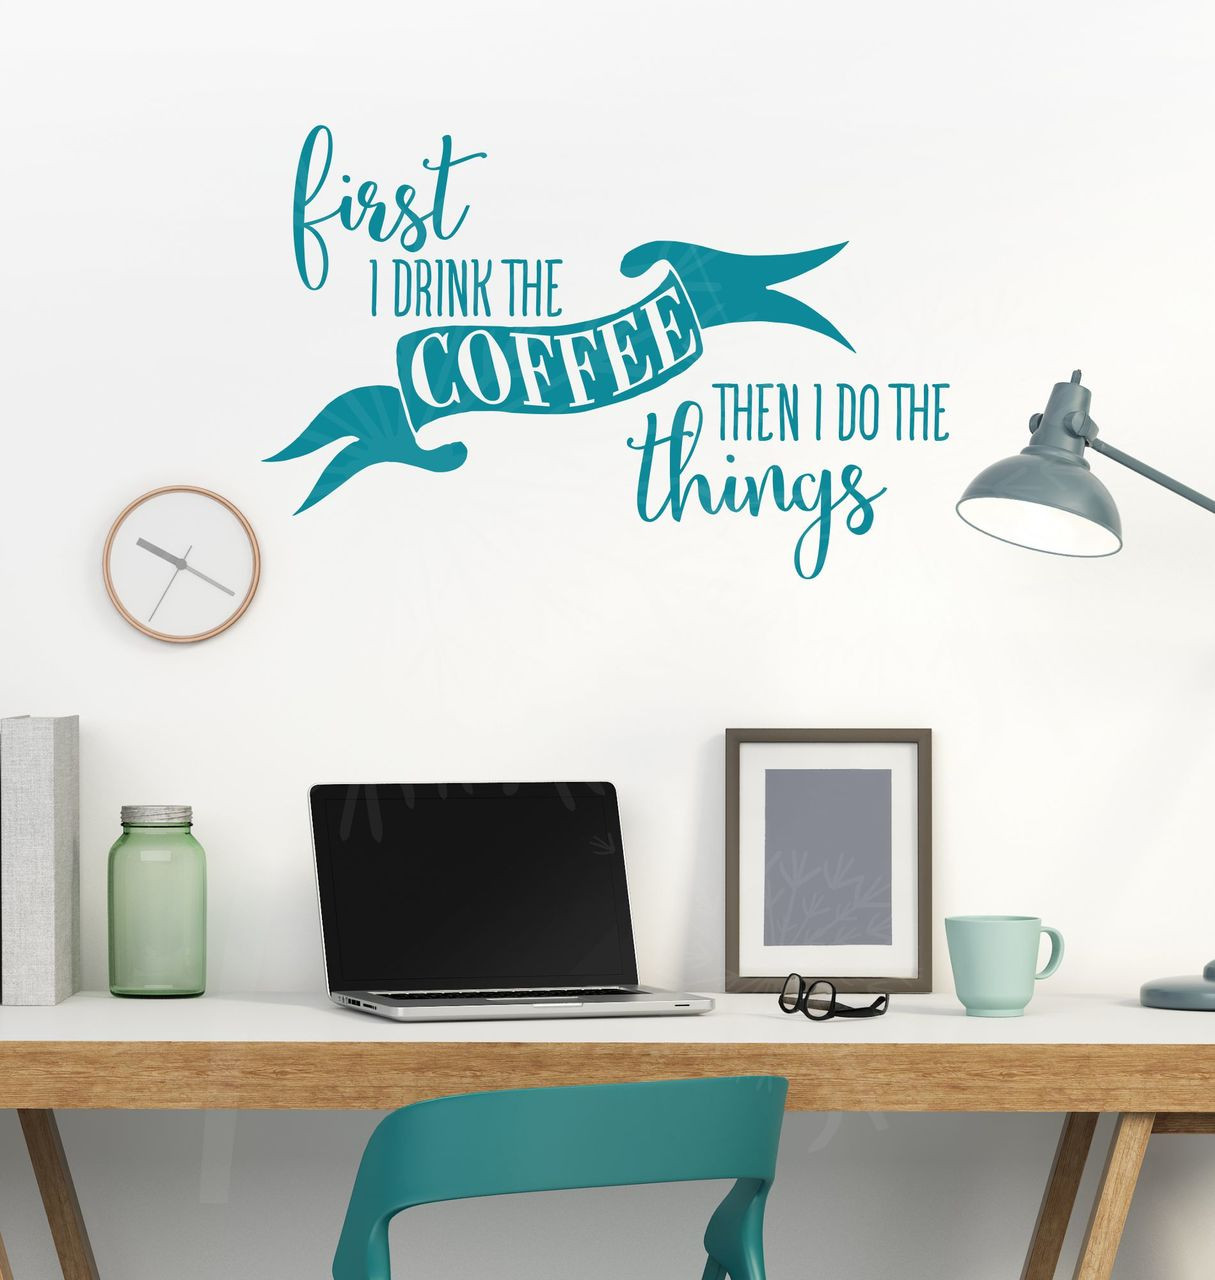 First I Drink Coffee Funny Office Kitchen Wall Stickers Decals Vinyl  Lettering Teal